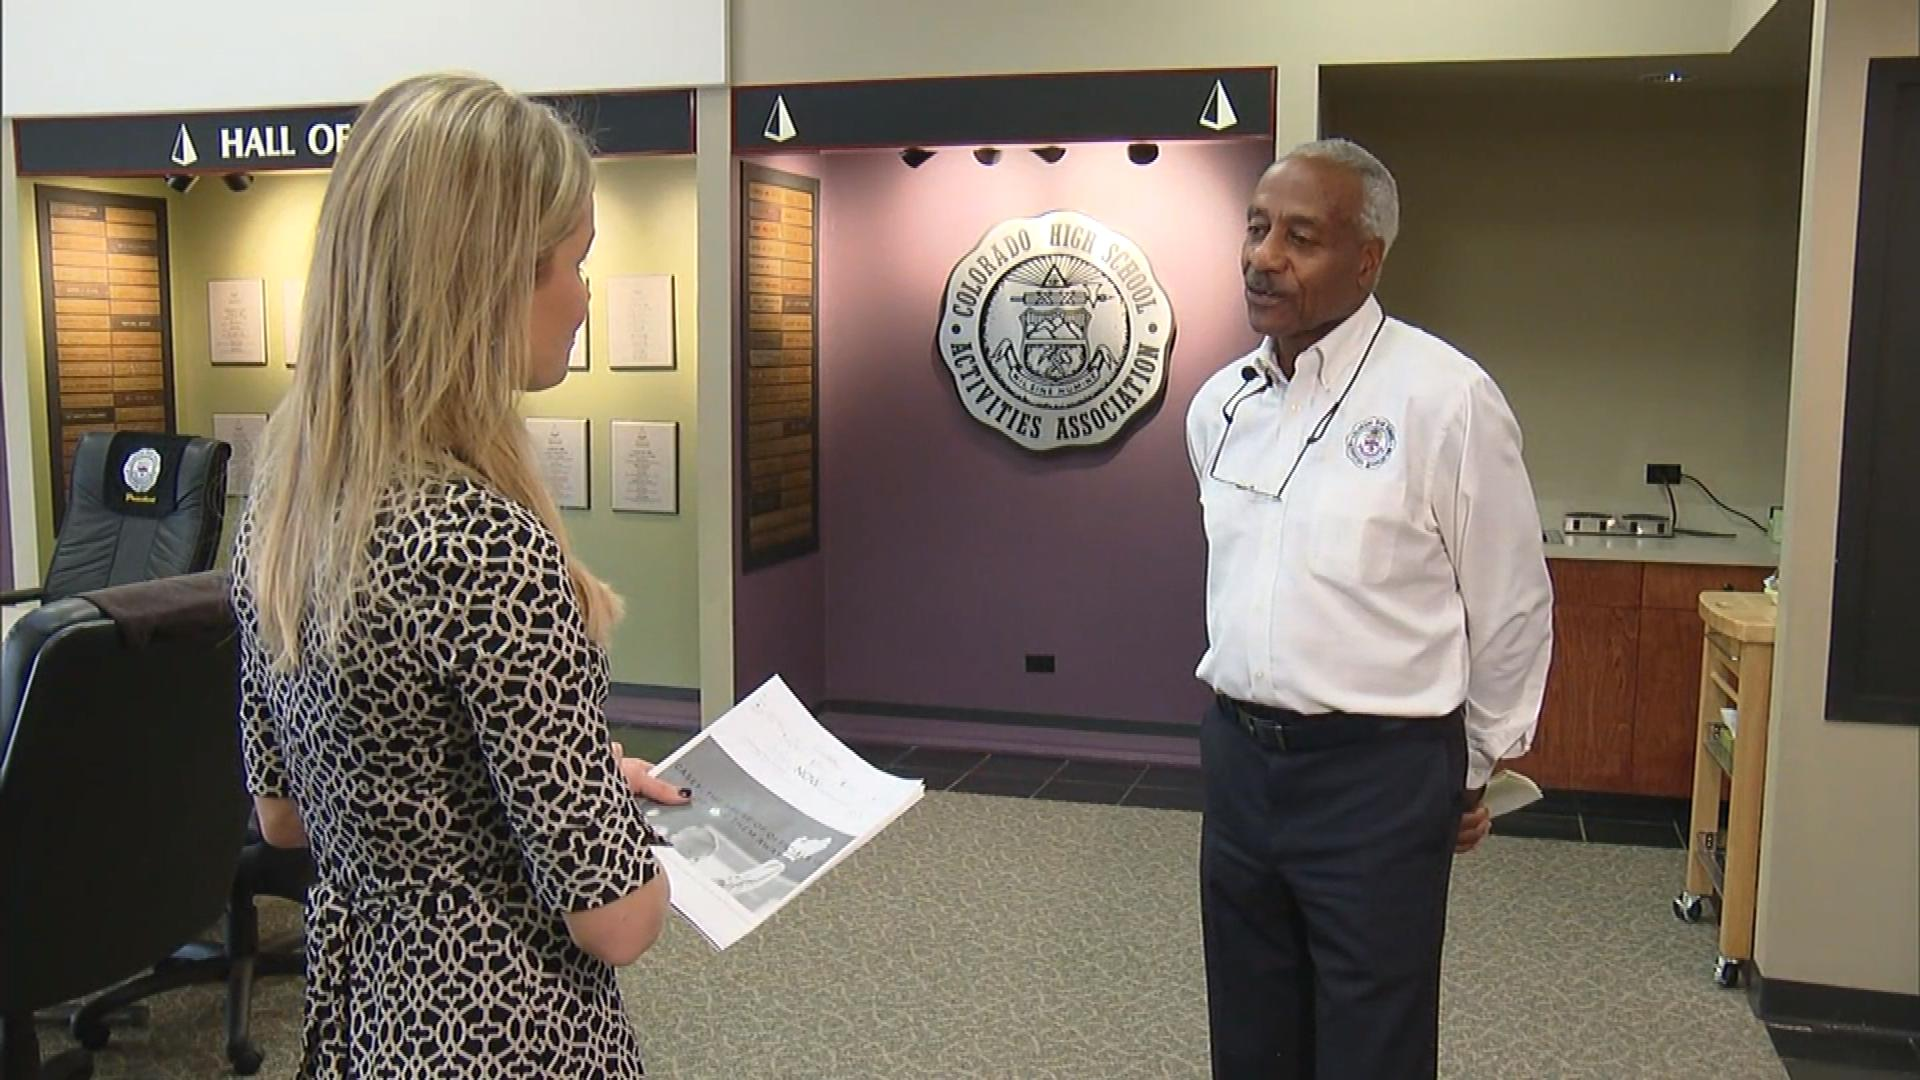 CBS4's Kelly Werthmann interviews Tom Robinson, Commissioner and officials liaison for the Colorado High School Athletics Association (credit: CBS)